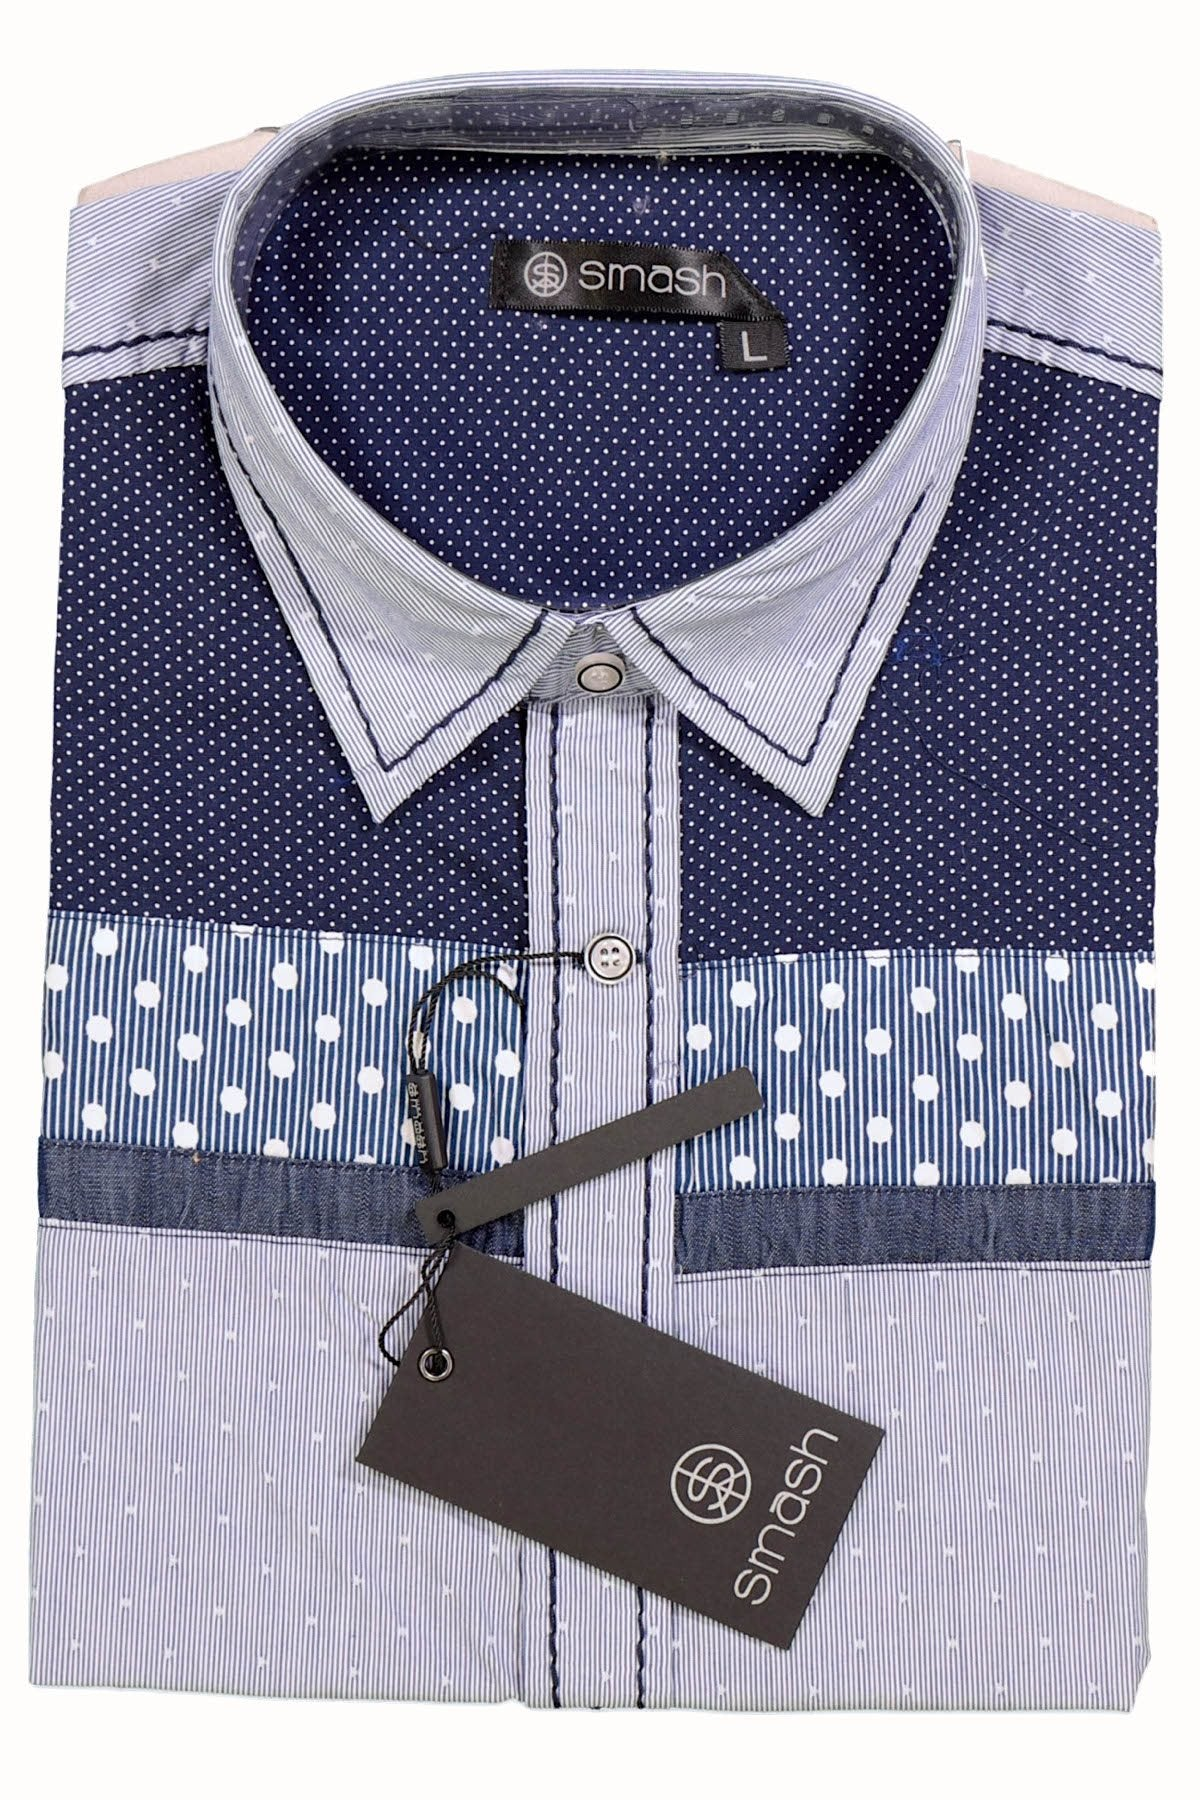 Smash Blue Polka Dot Button-Up Shirt